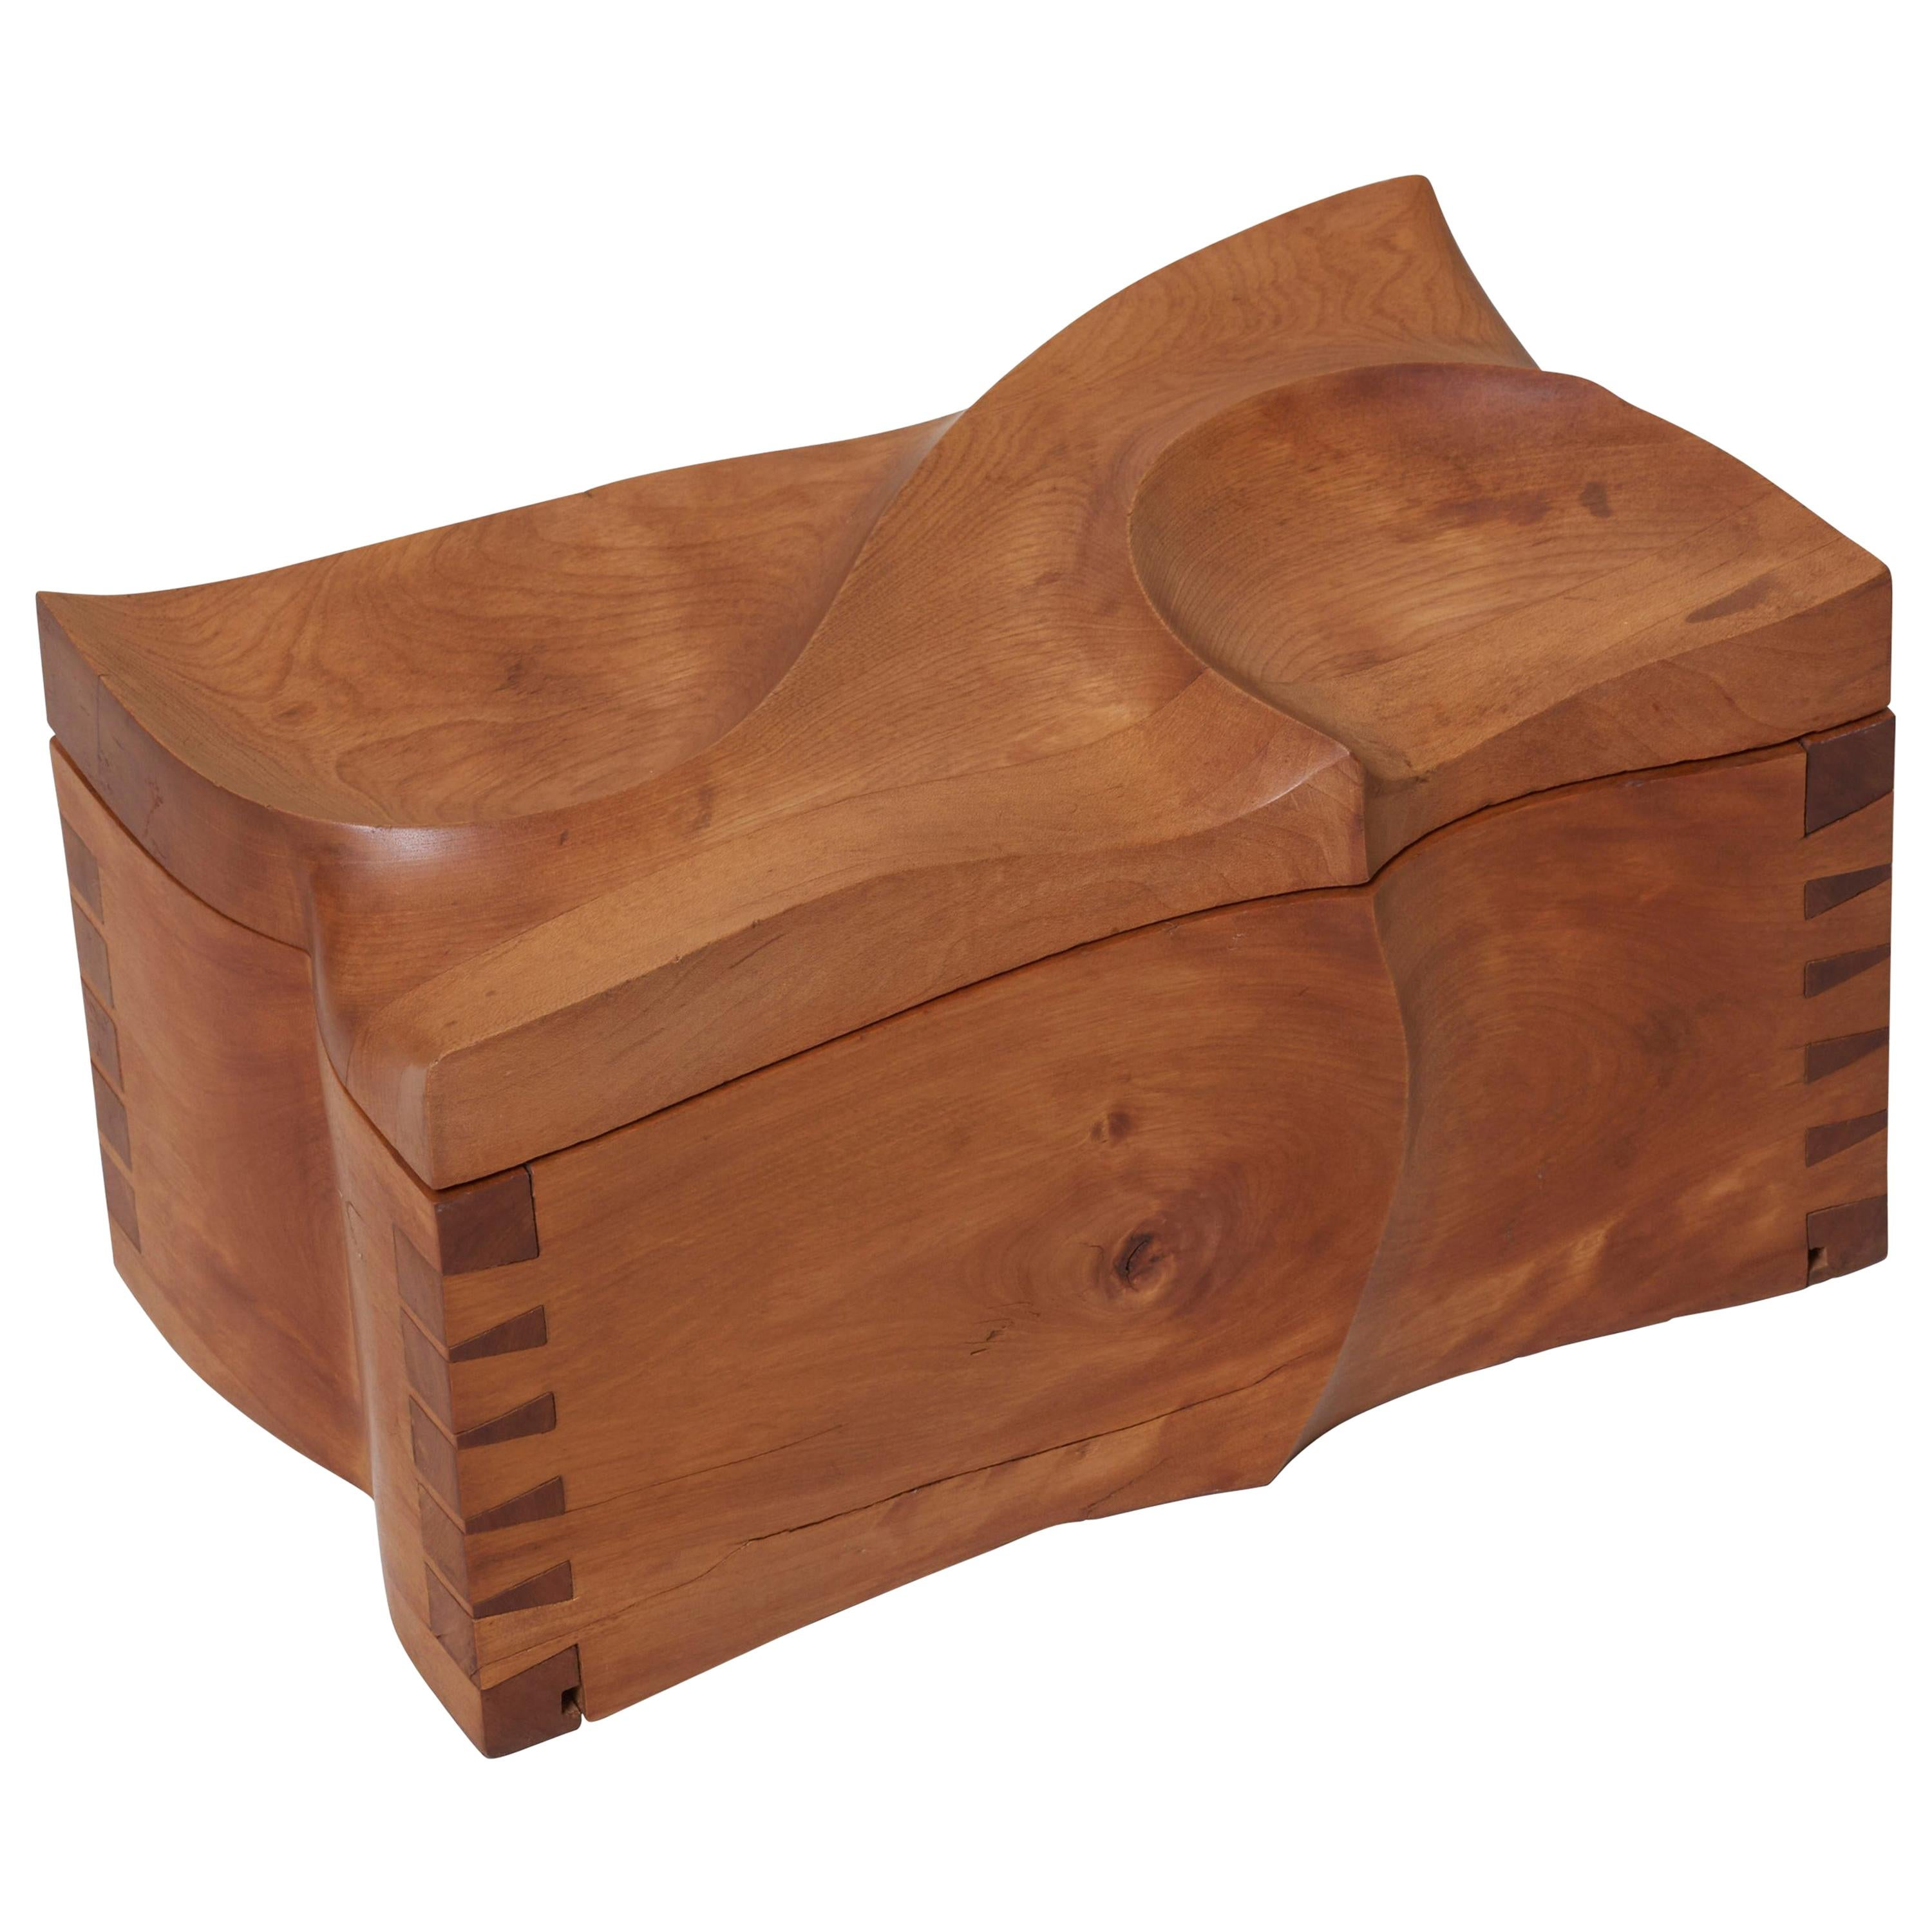 Decorative Wooden Box in the Manner of Michael Coffey, US, 1970s